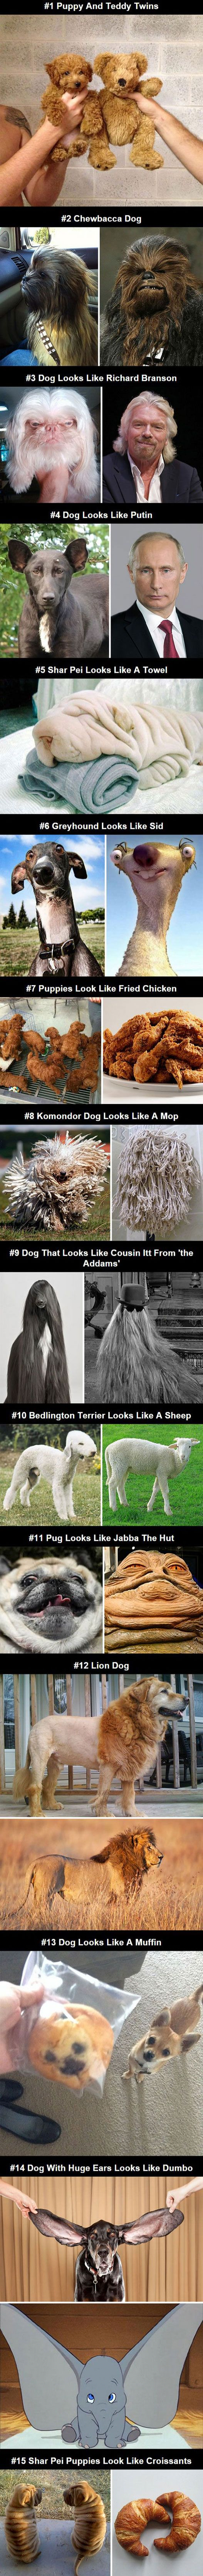 Dogs that look like other things.